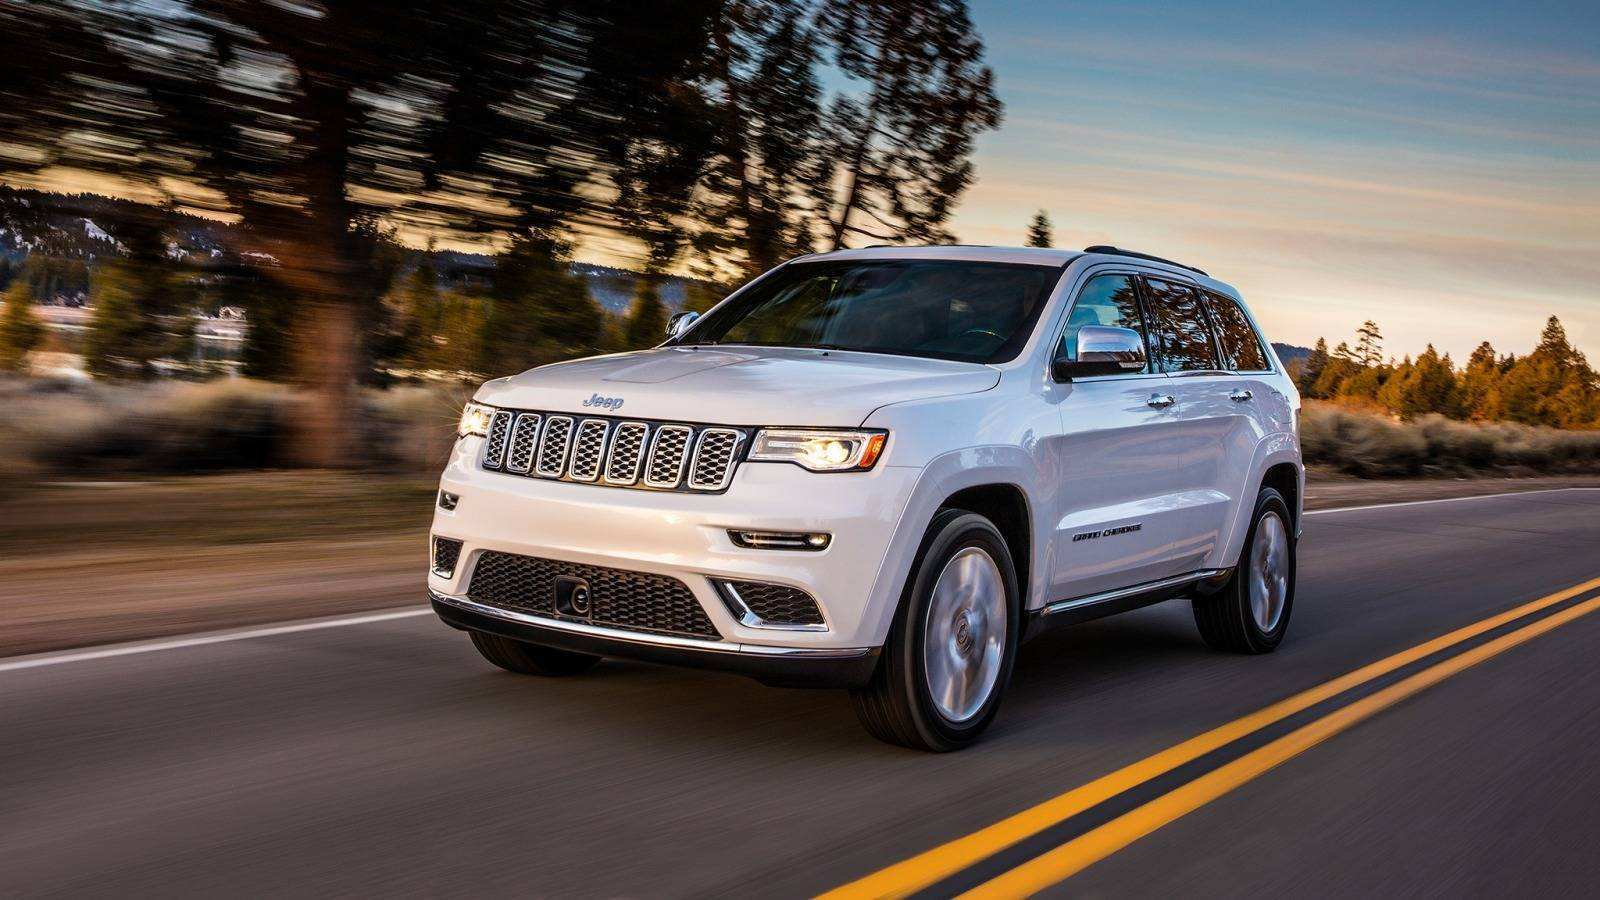 56 Best Review 2019 Jeep V8 New Concept by 2019 Jeep V8